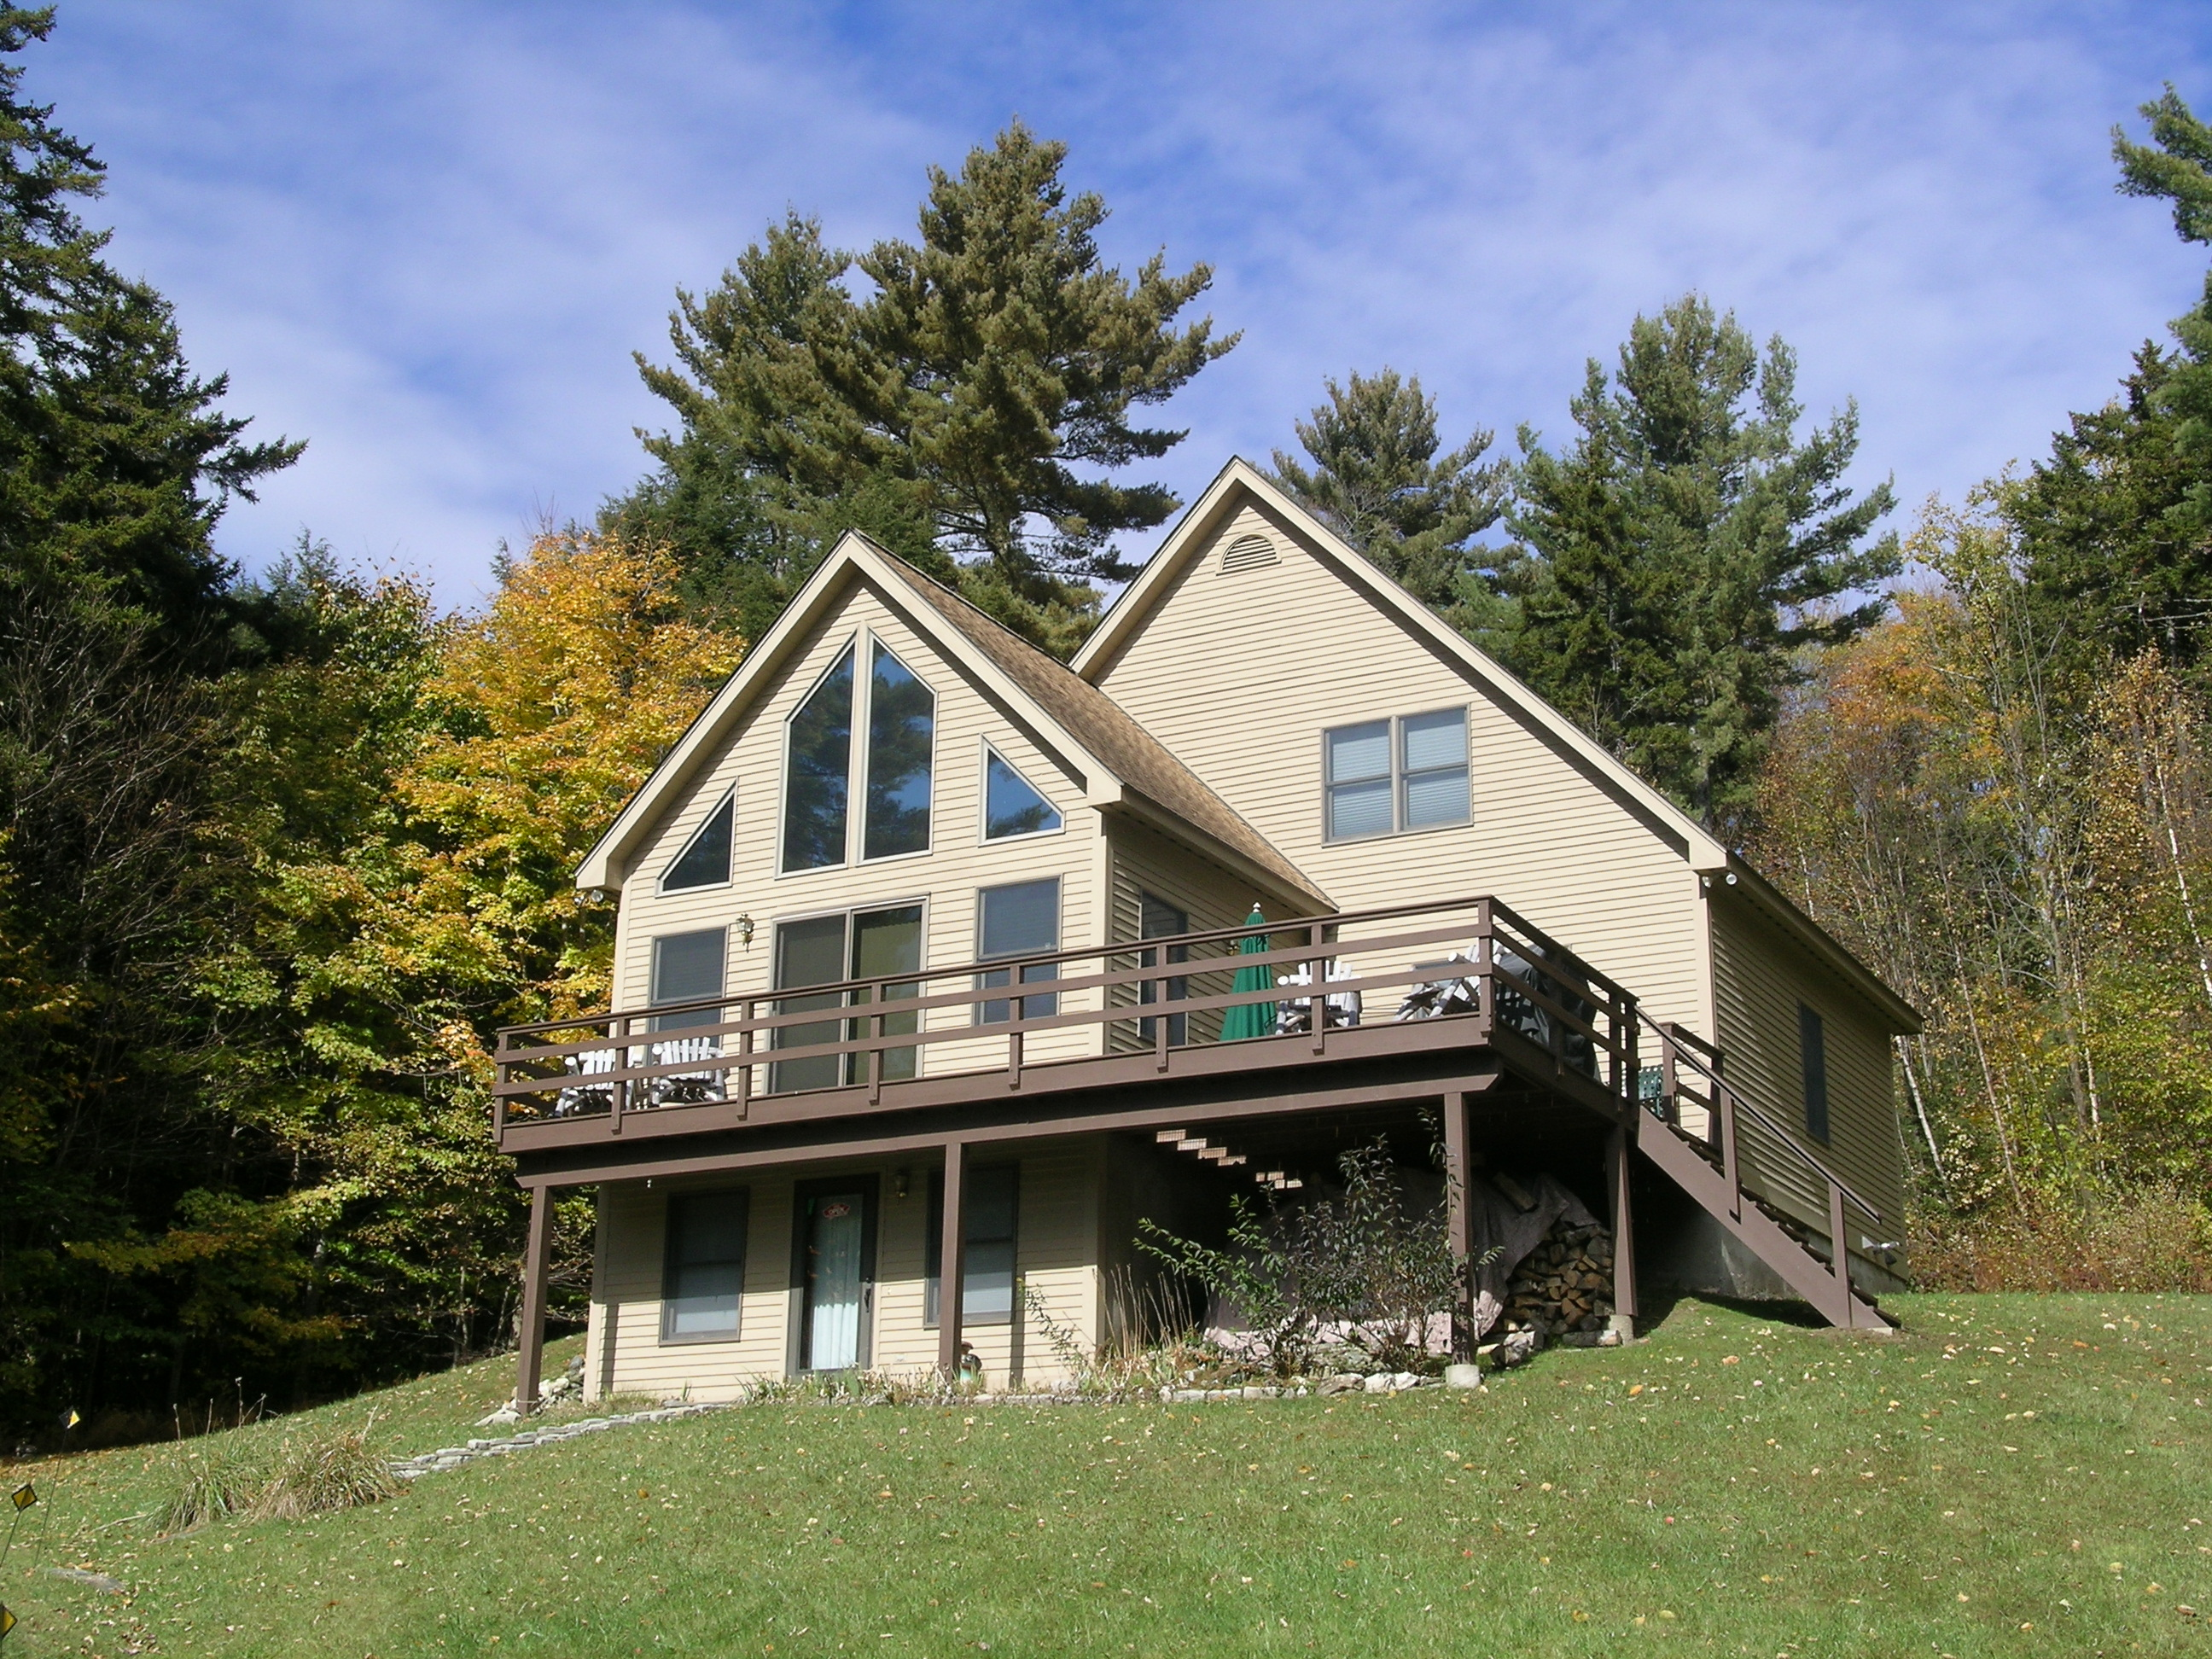 451 Colby Pond Rd, Plymouth, Vermont 05056